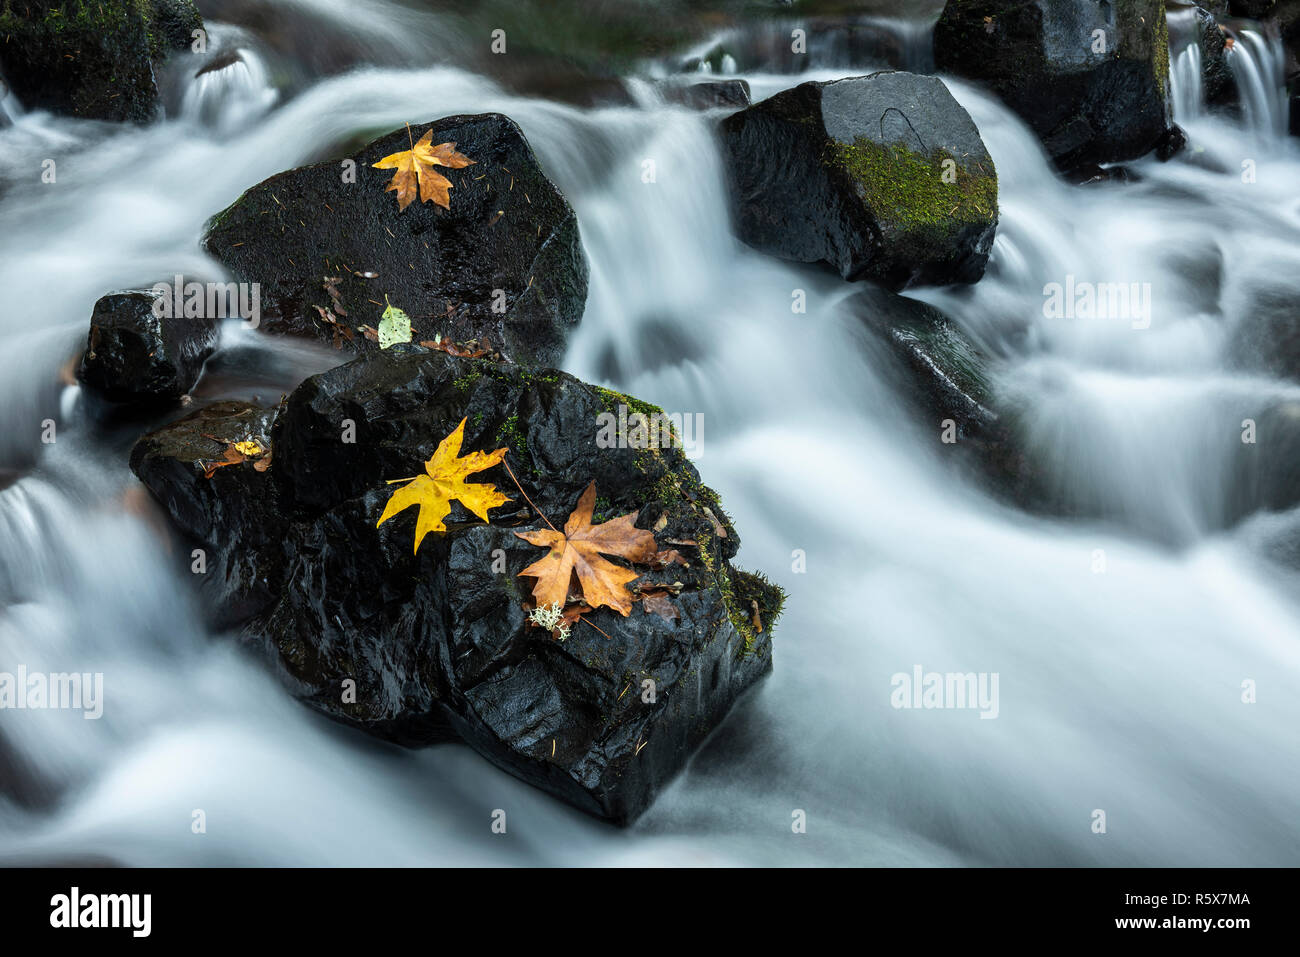 Bigleaf maple (Acer macrophyllum) leaves on rocks, Bridal Veil Creek, October,  Multnomah County, OR, USA, by Dominique Braud/Dembinsky Photo Assoc - Stock Image